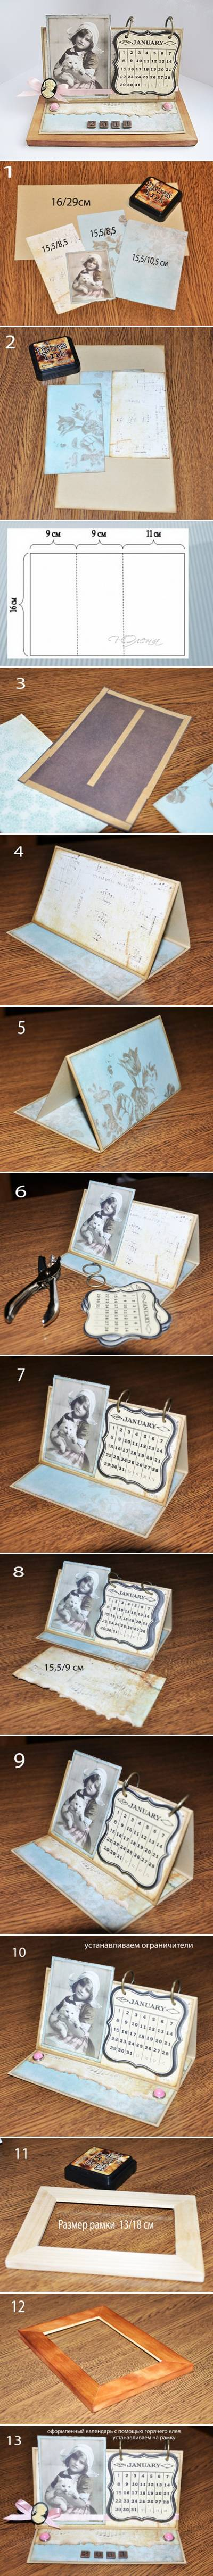 How to make your own Handmade Calendar step by step DIY instructions